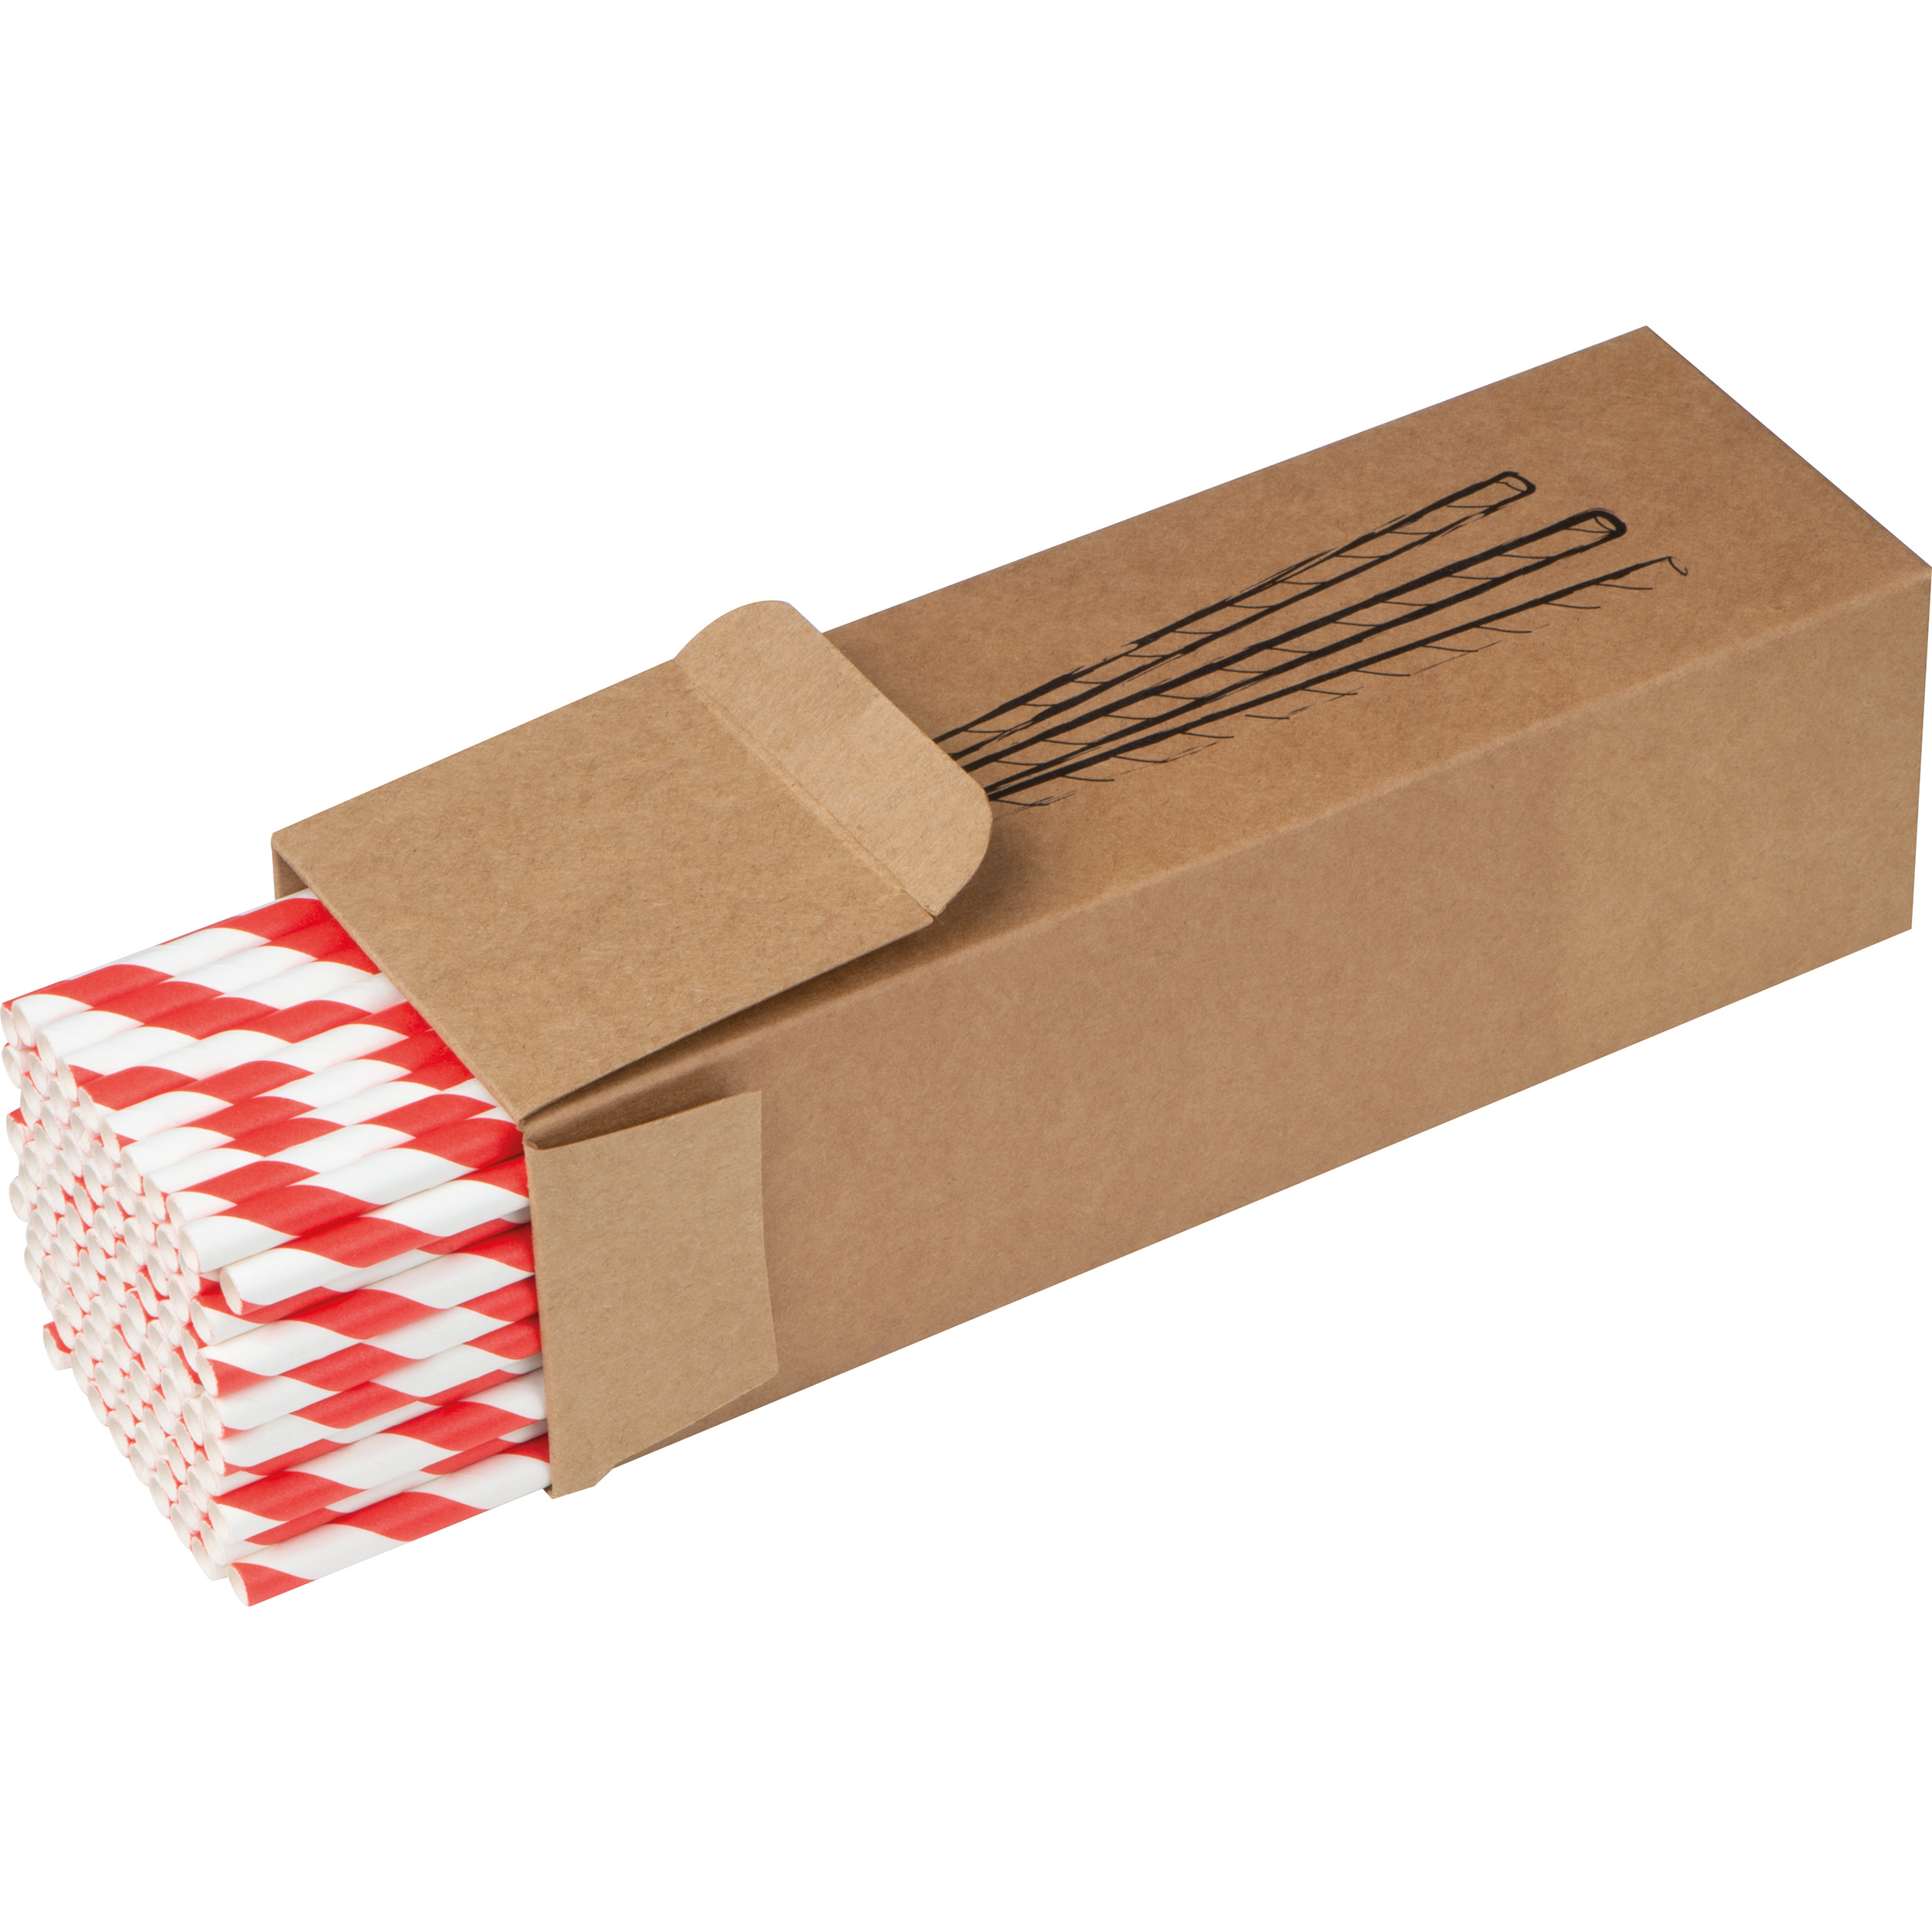 Set of 100 drink straws made of paper